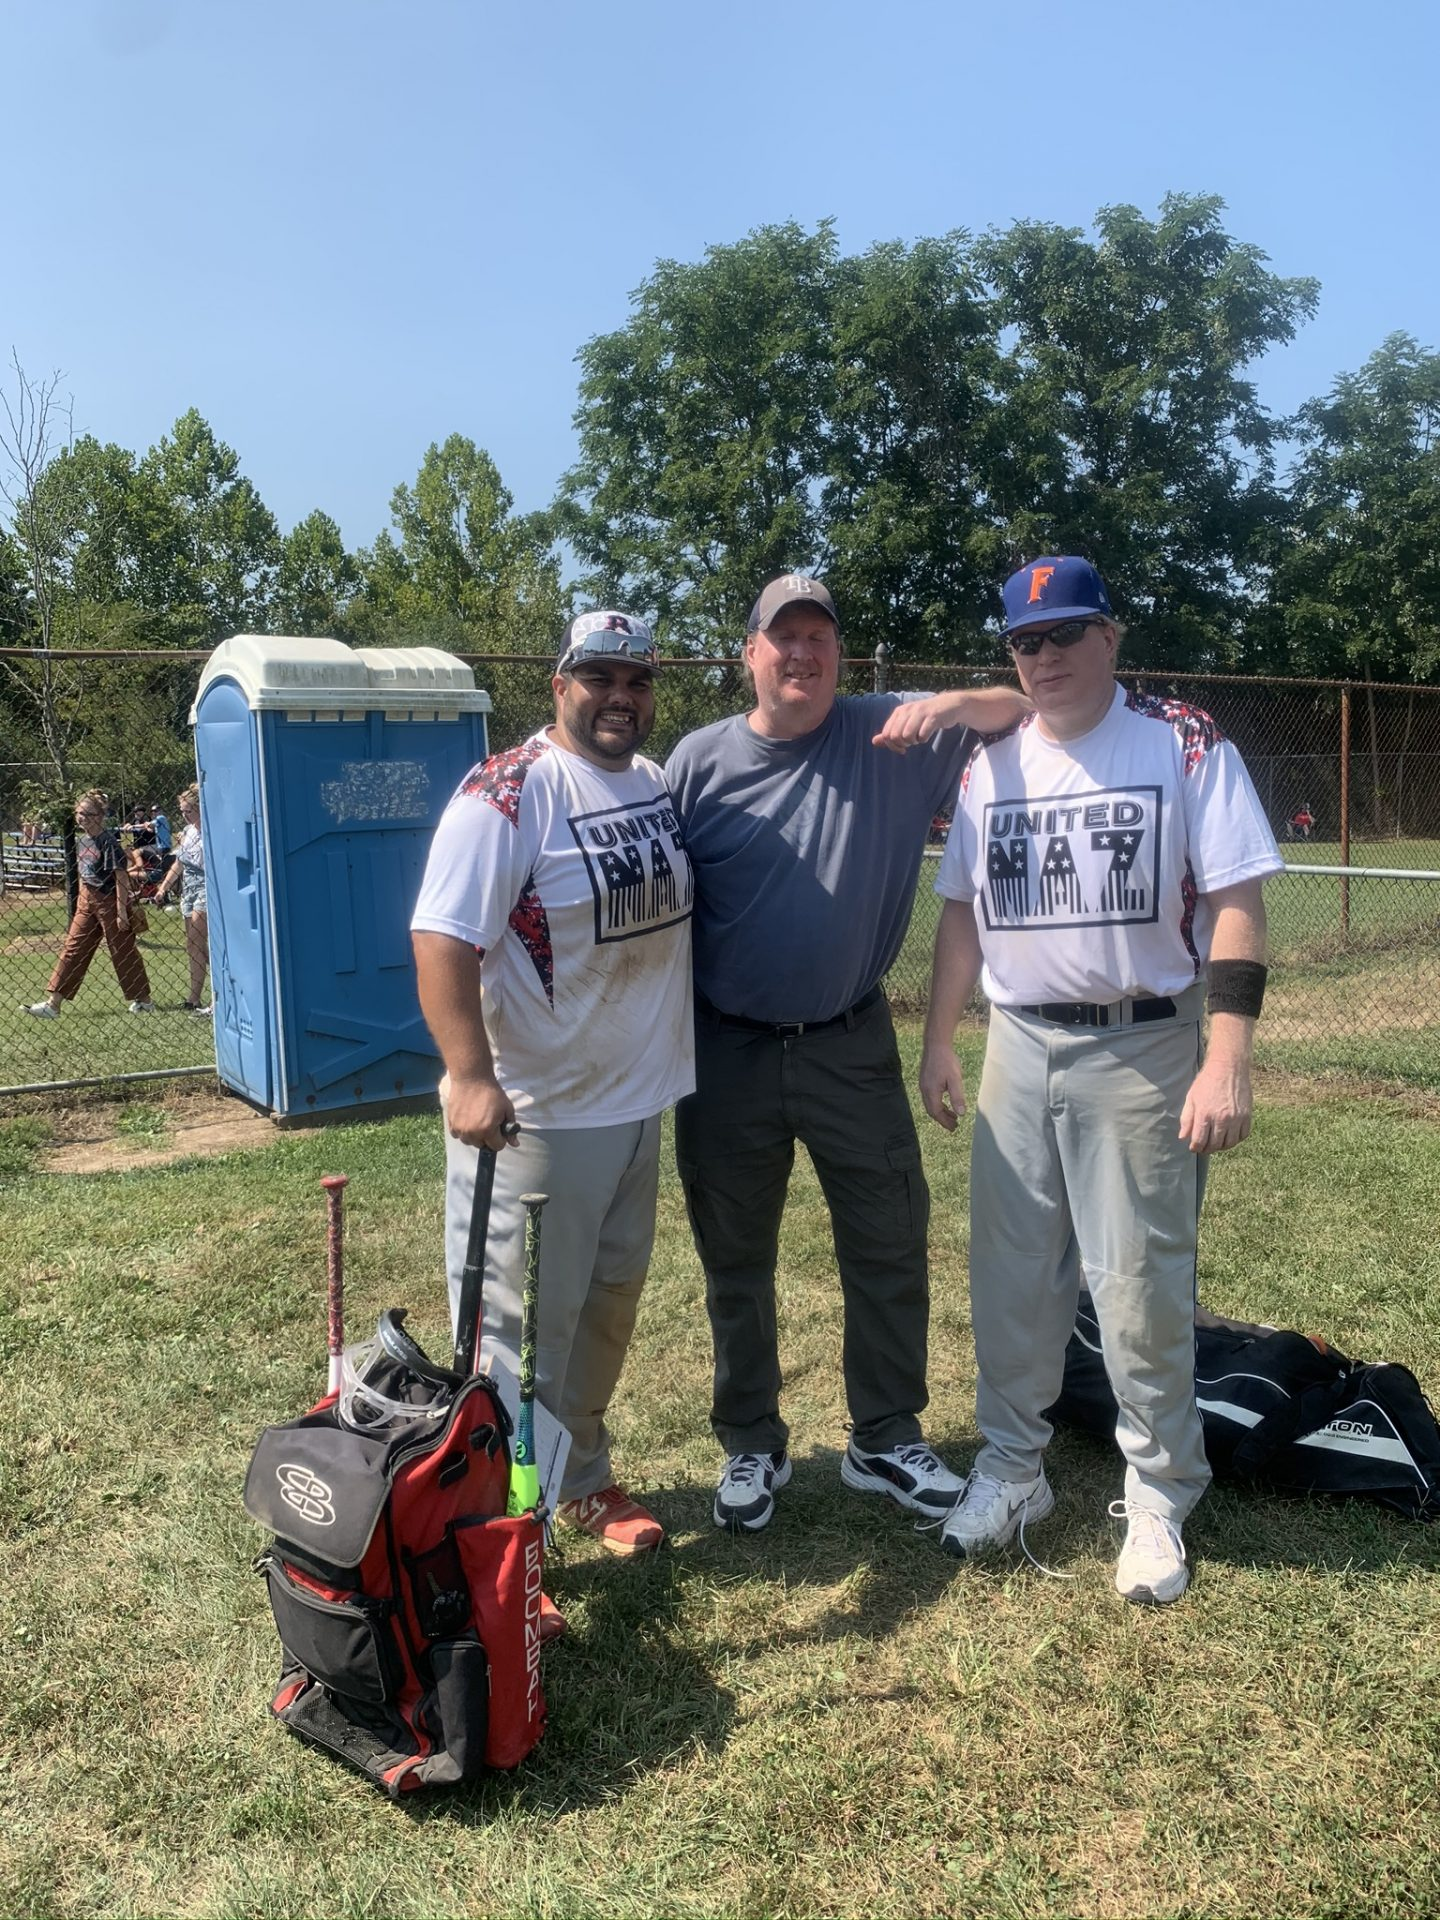 Sure will miss my brother. We've had so many good memories and laughs on the ball fields over the years. Praying for the family.